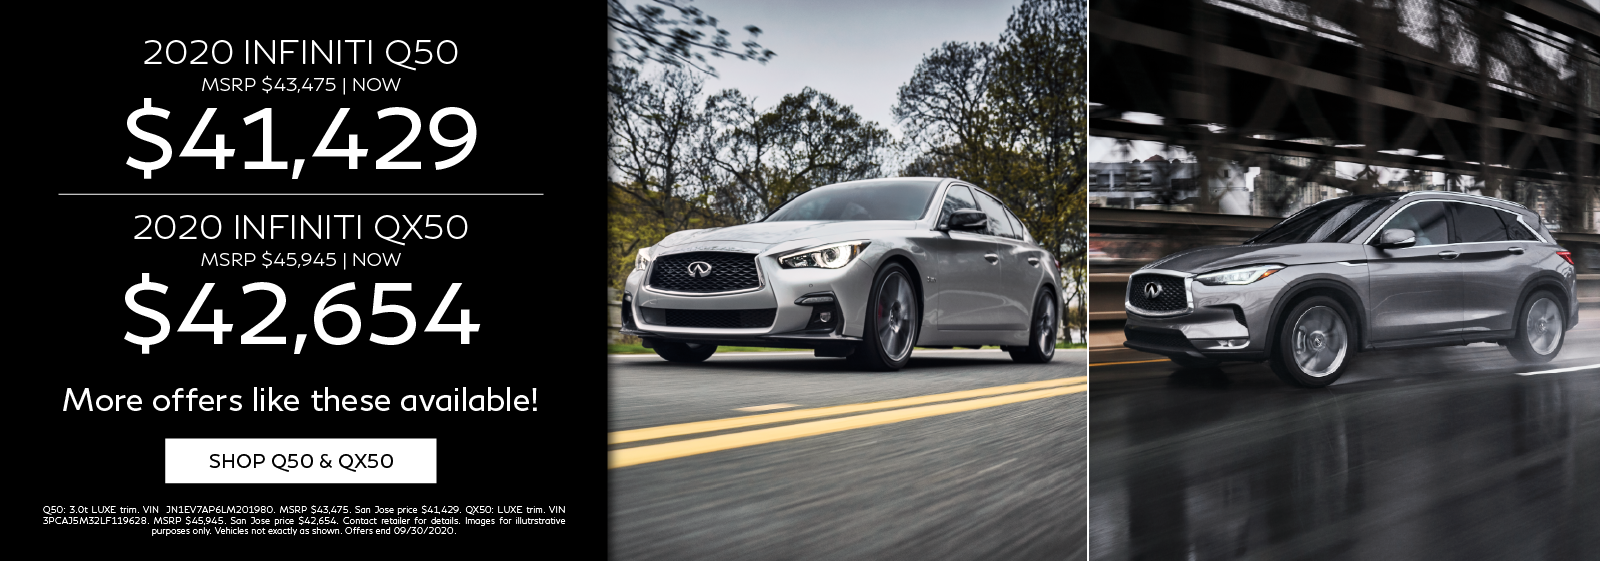 on new 2020 INFINITI Q50s and QX50s! Click to shop now.